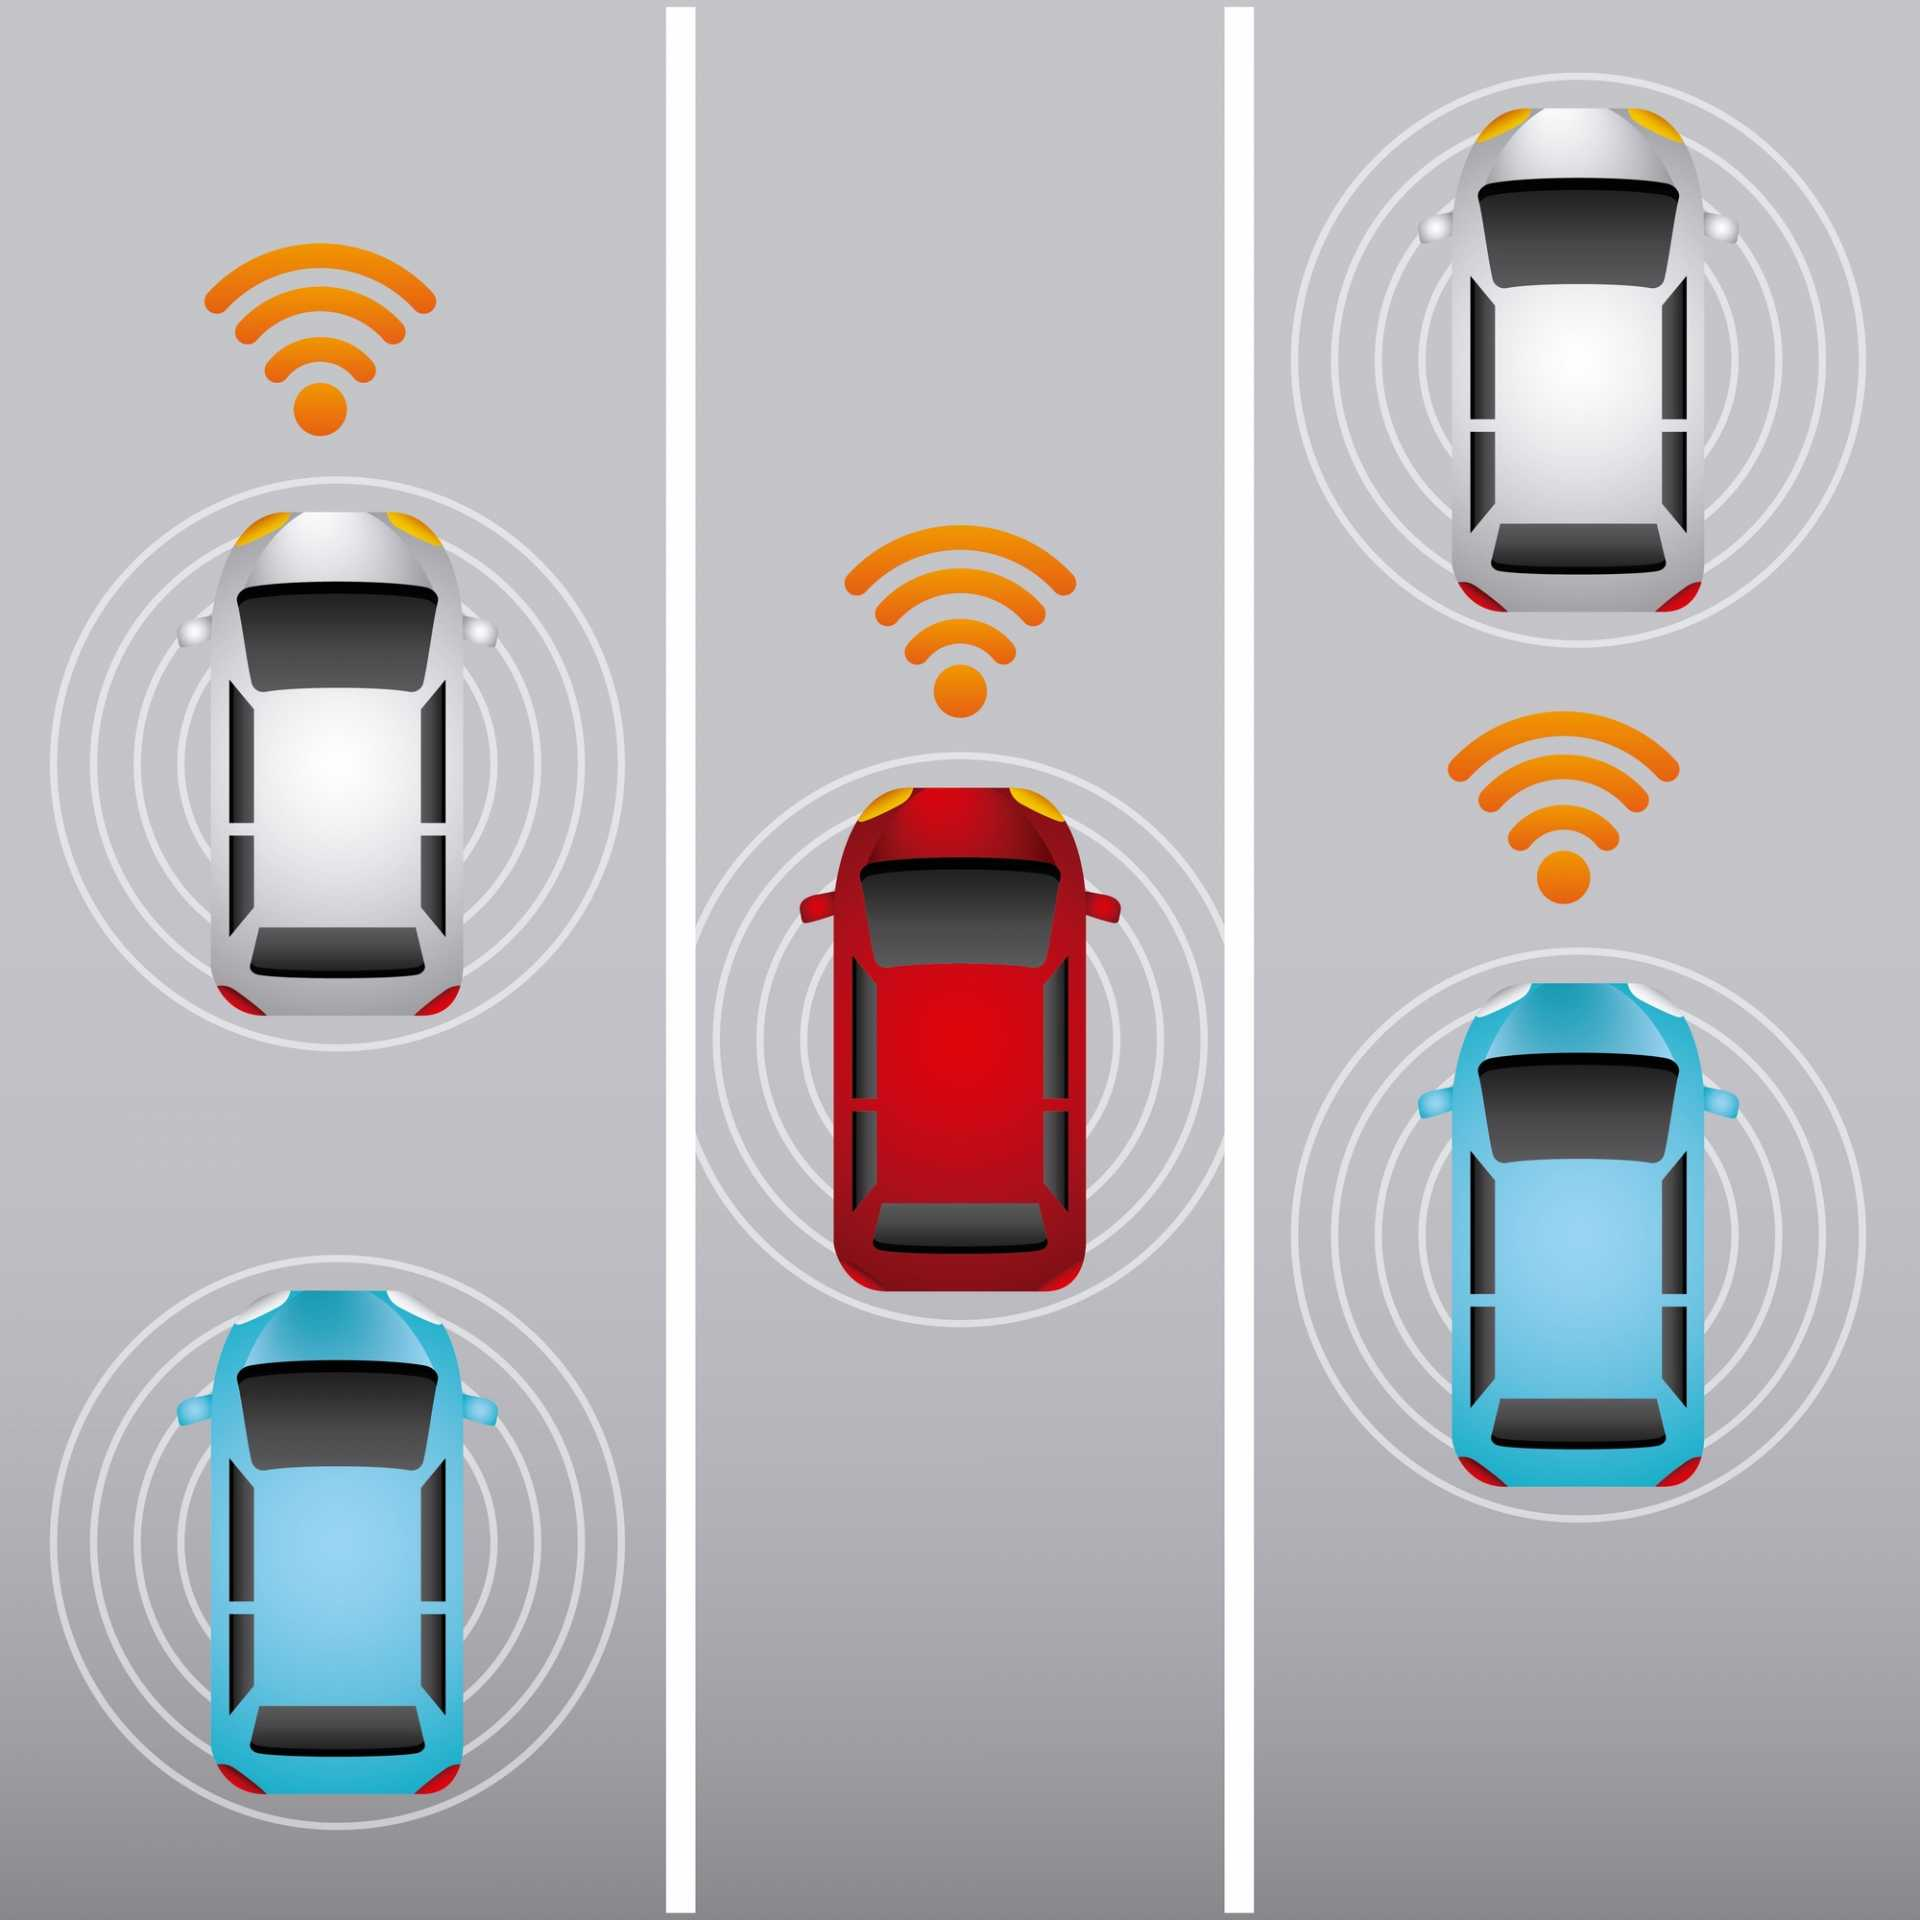 The introduction of 5G is further propelling the cause for autonomous vehicles.